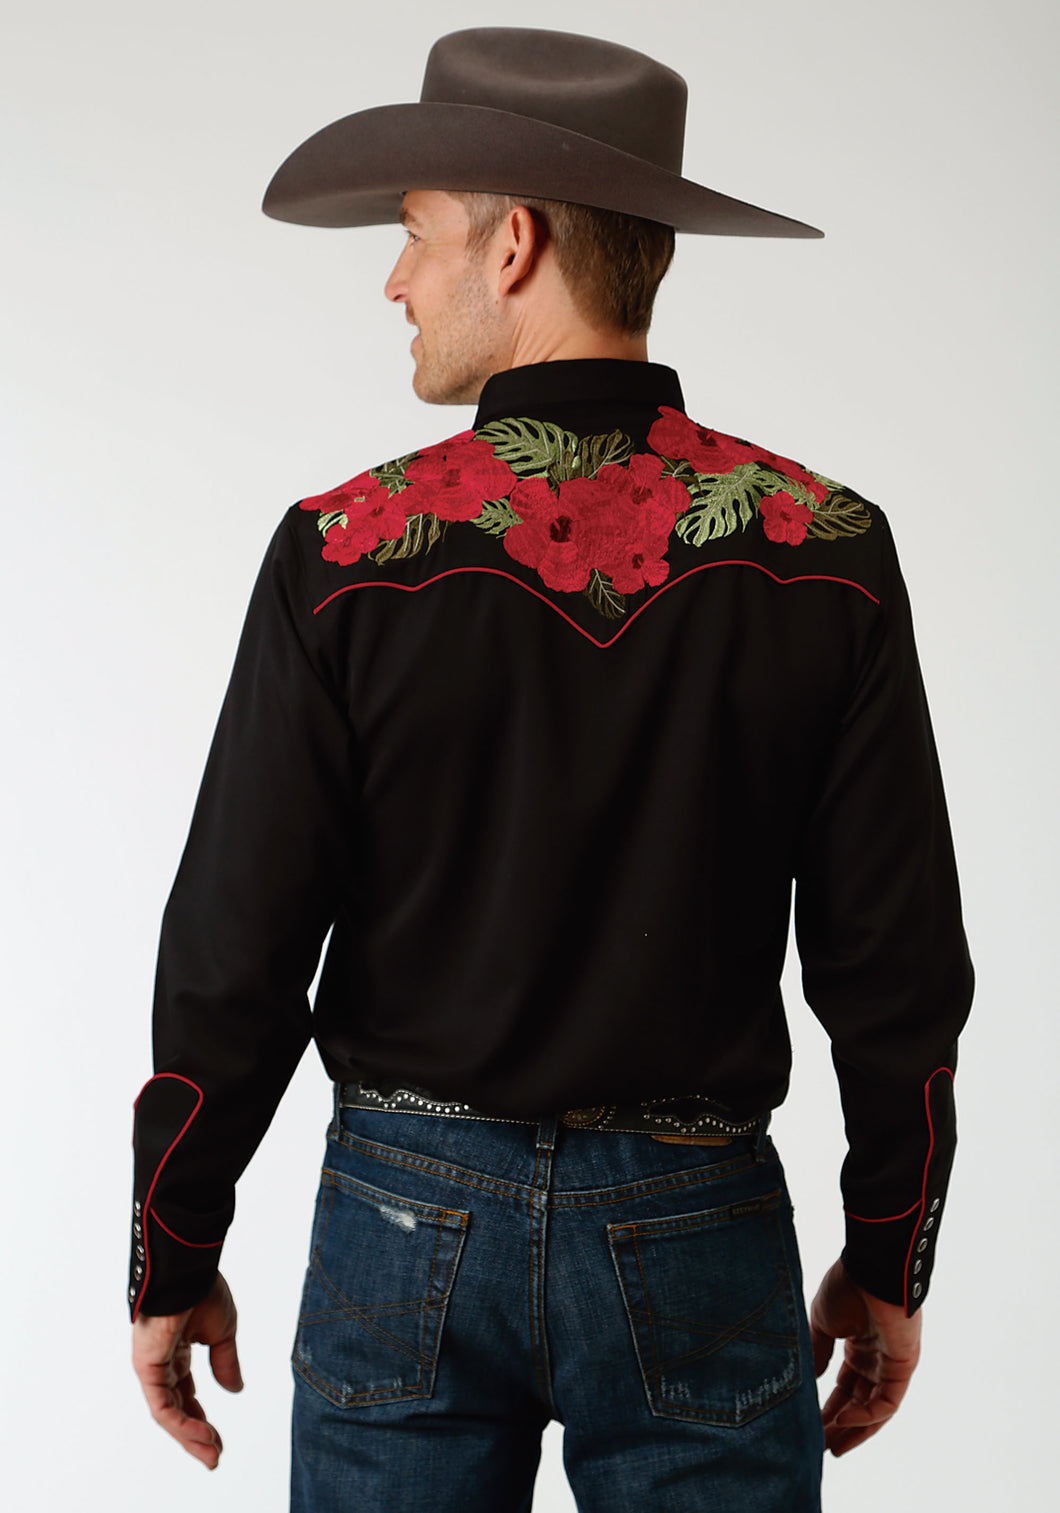 Old West Collection Oldwest Mens Long Sleeve Shirt 1396 Hawaiian Floral Embroidery